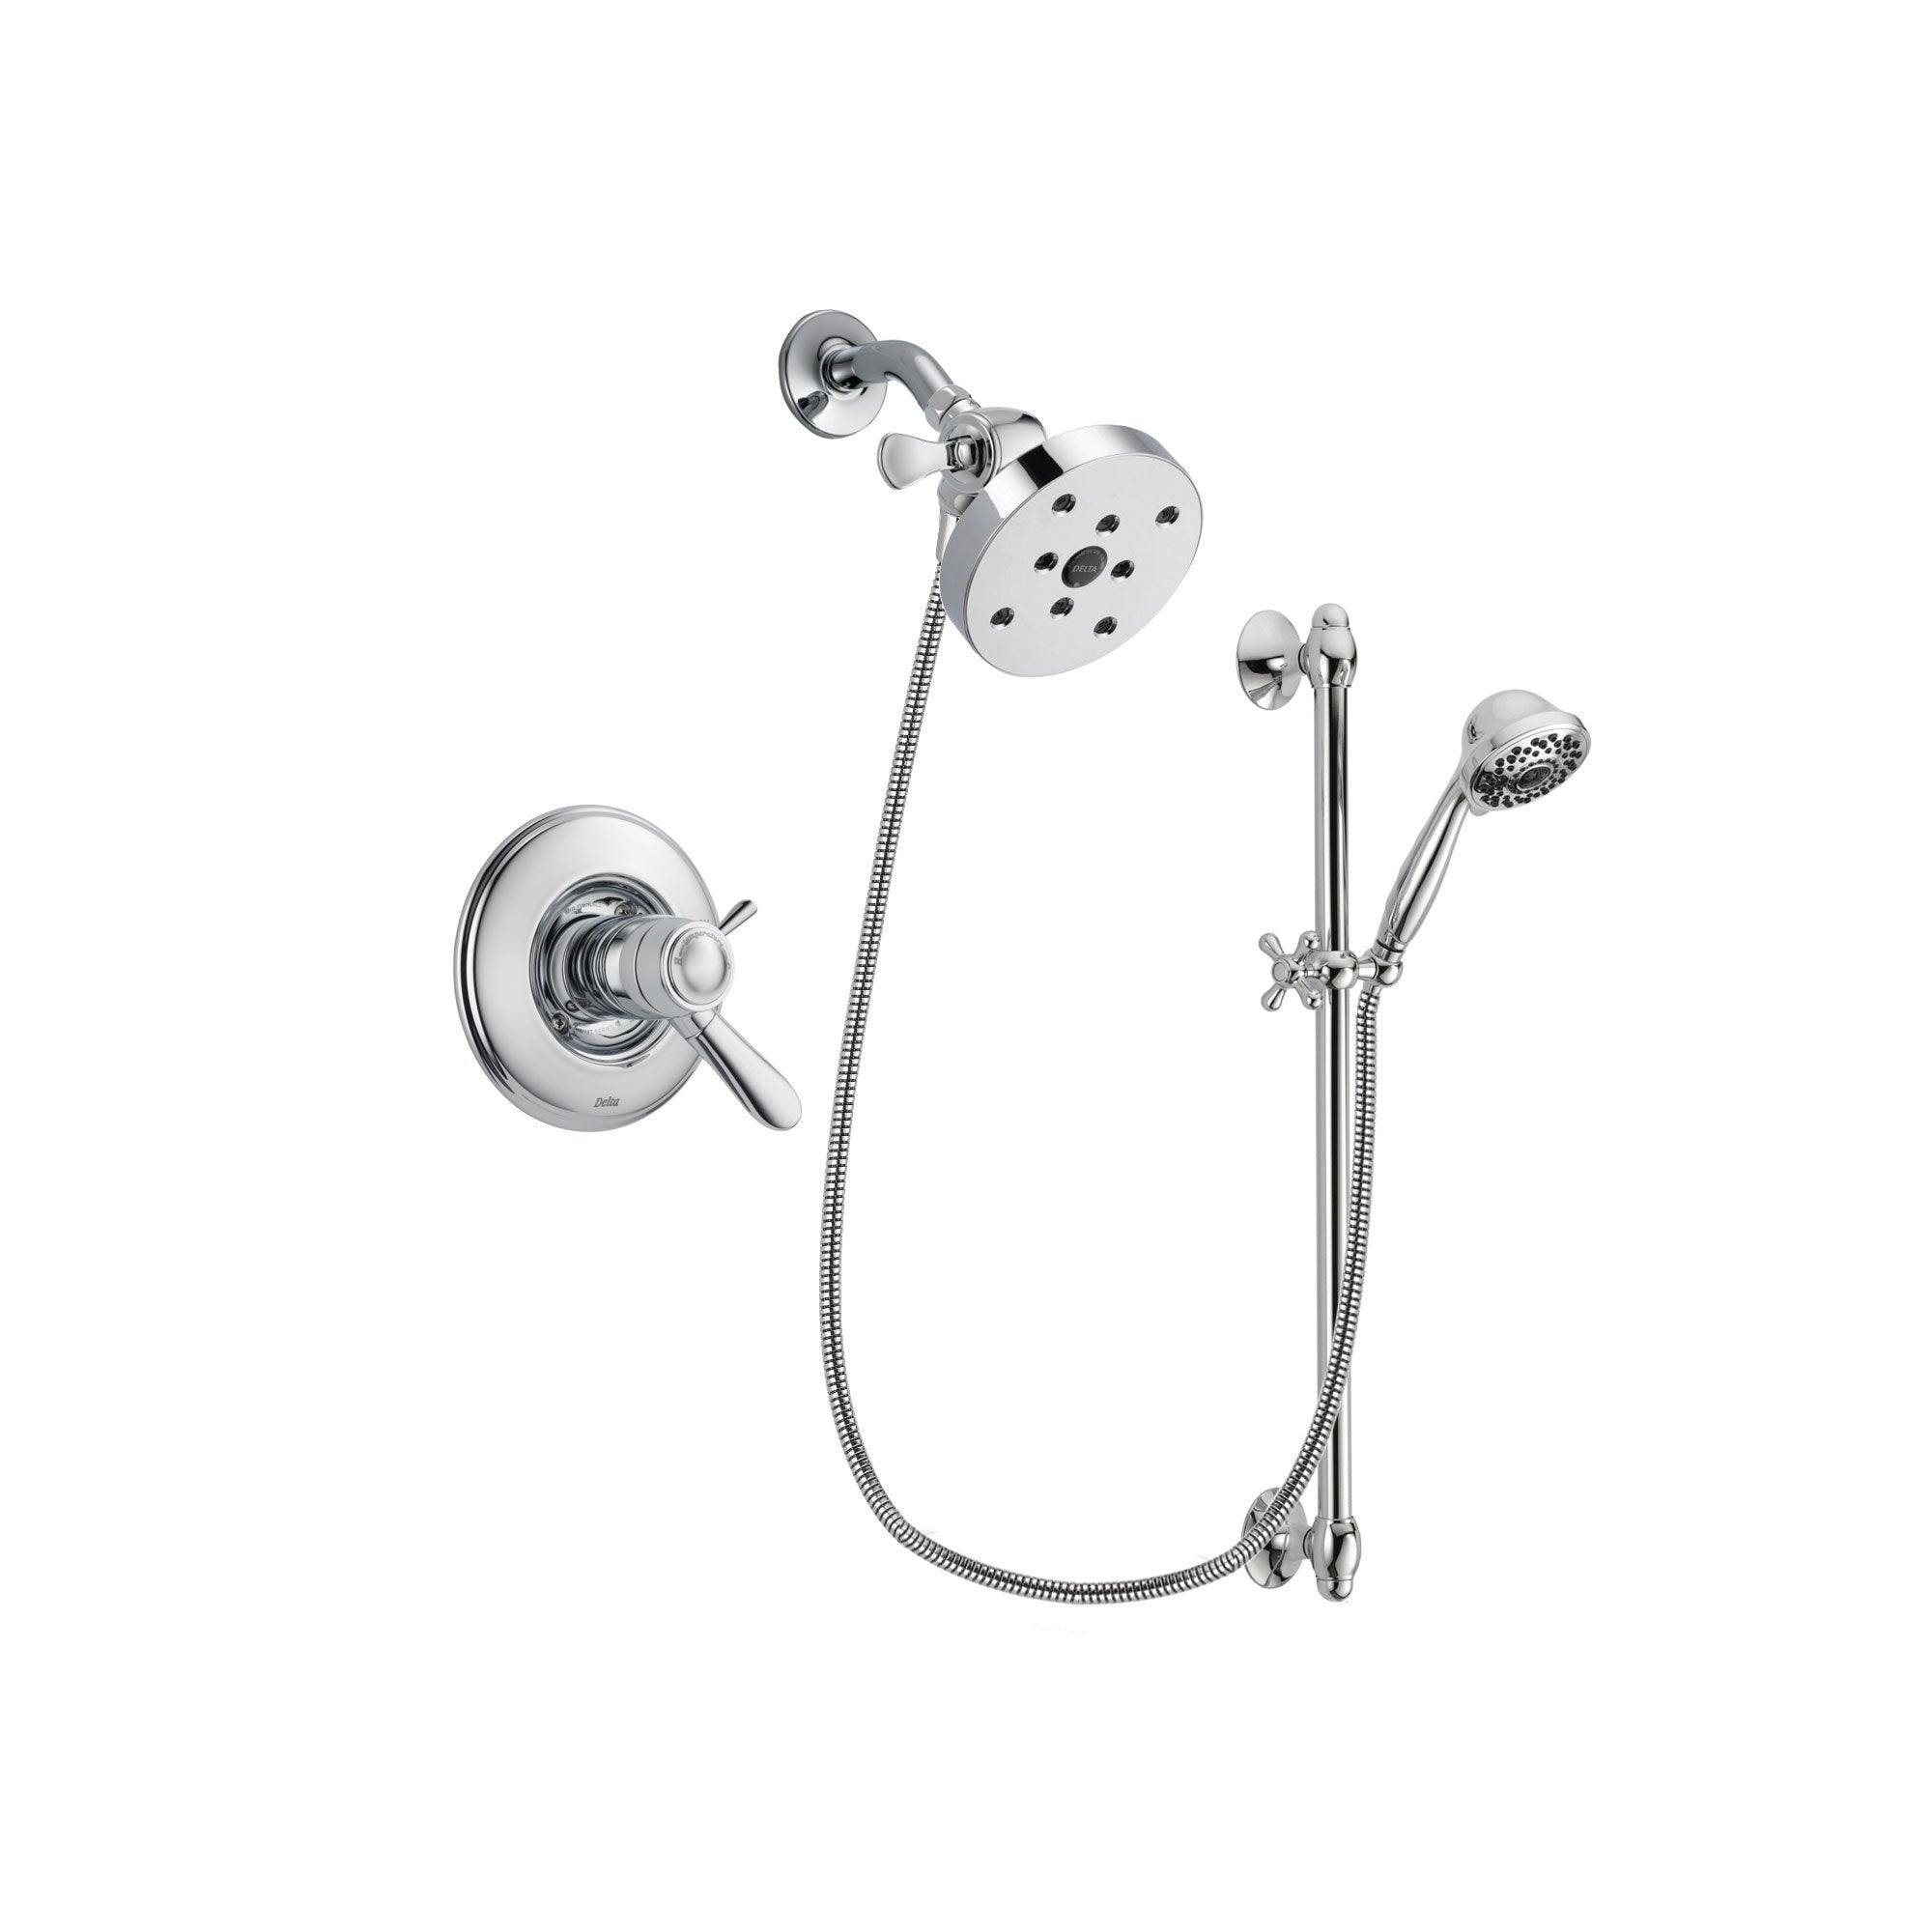 Delta Lahara Chrome Shower Faucet System w/ Shower Head and Hand Shower DSP0664V